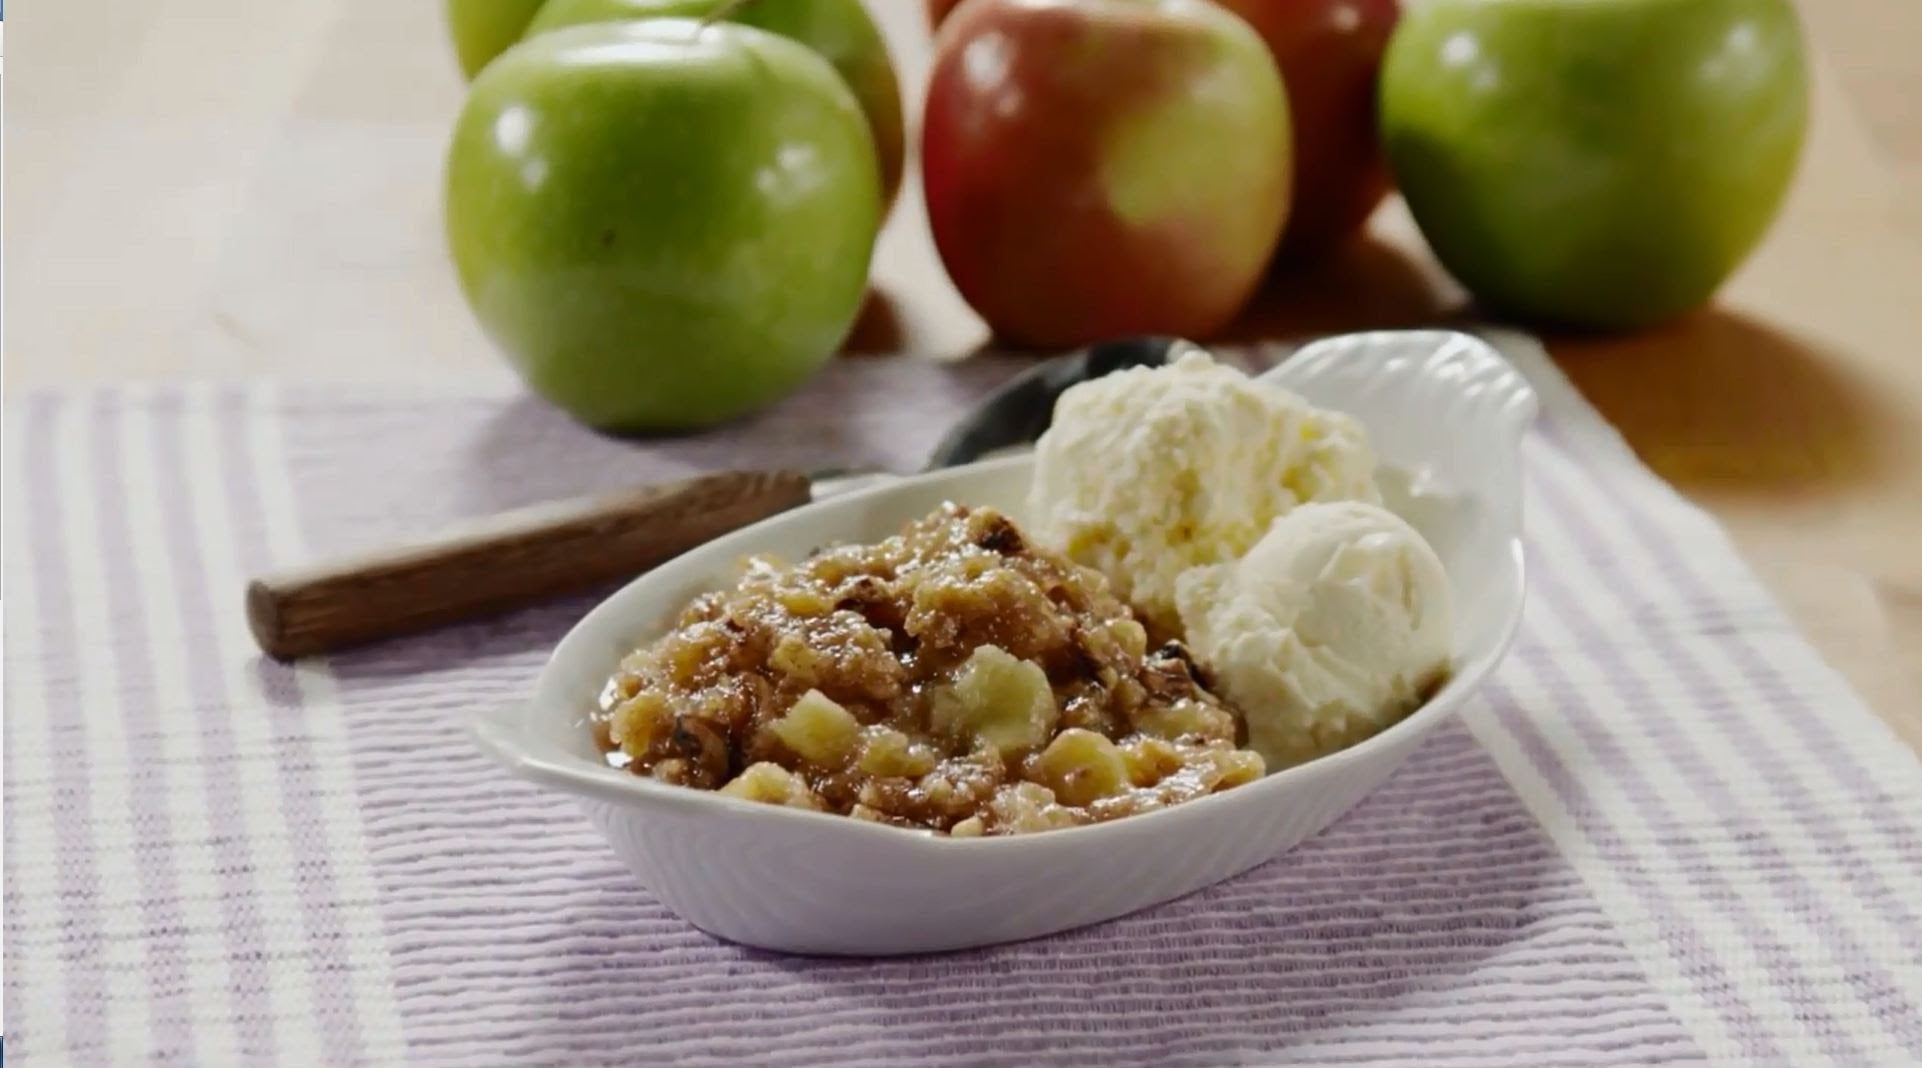 Slow Cooker Recipes – How to Make Slow Cooker Apple Crisp